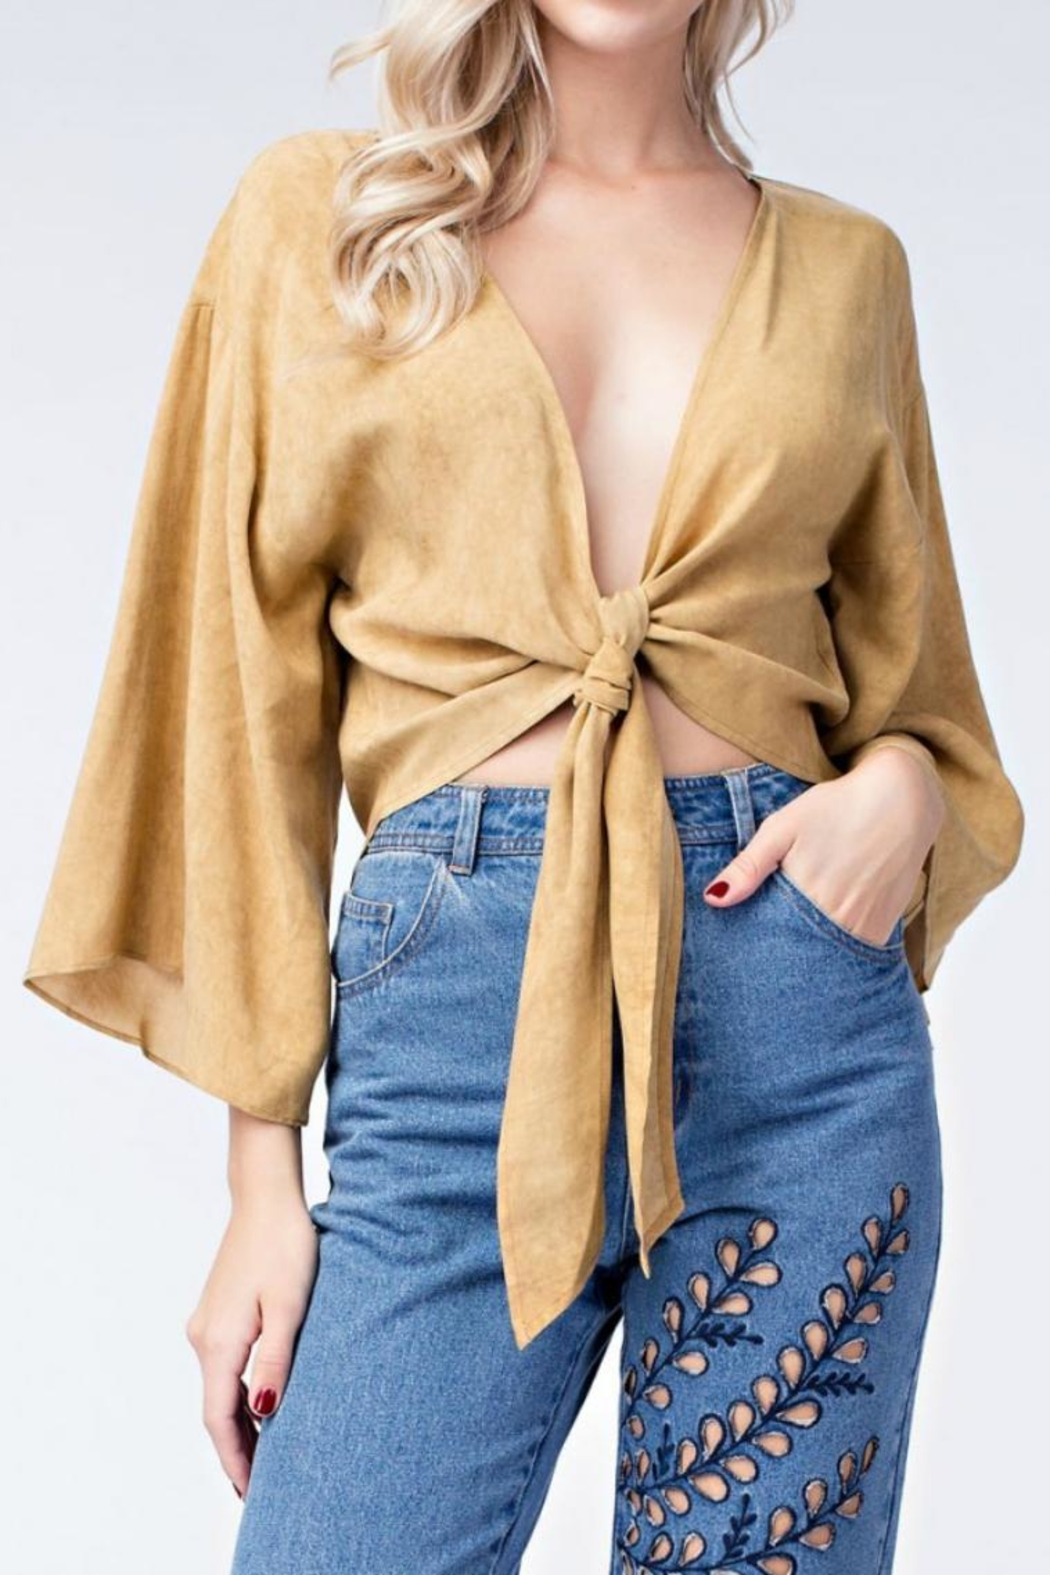 honey belle Mustard Tie Top - Side Cropped Image